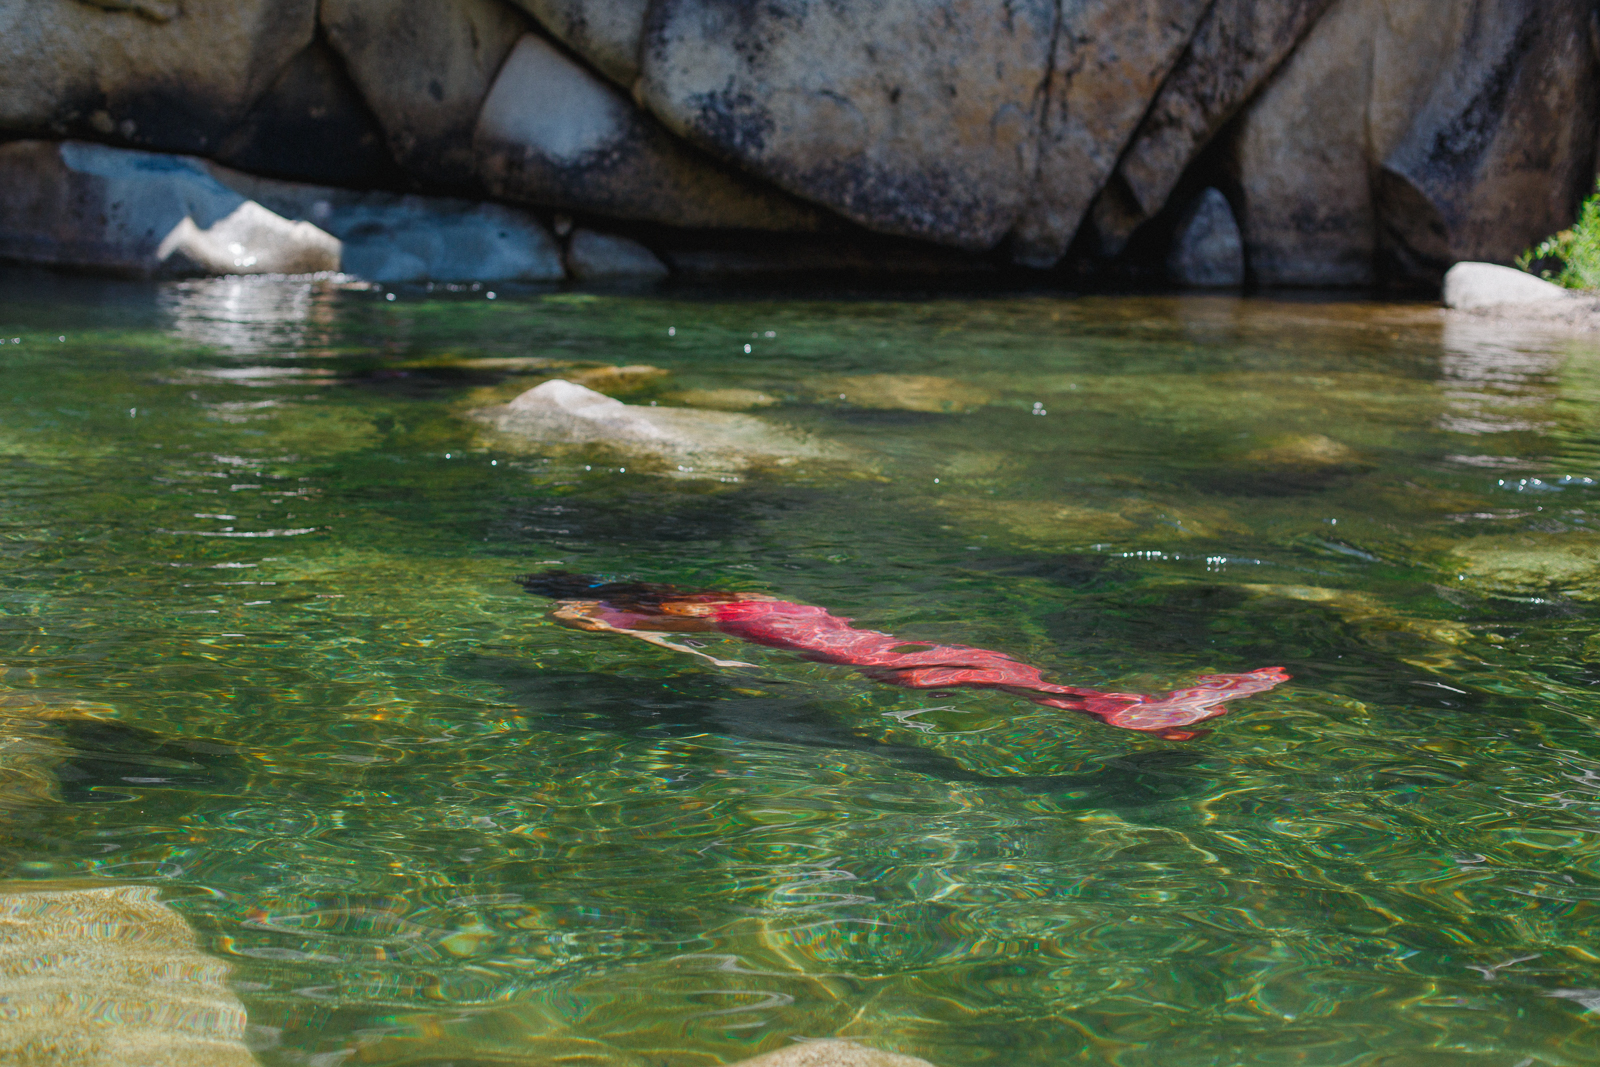 Mermaid underwater in the Yuba River outside Nevada City, California